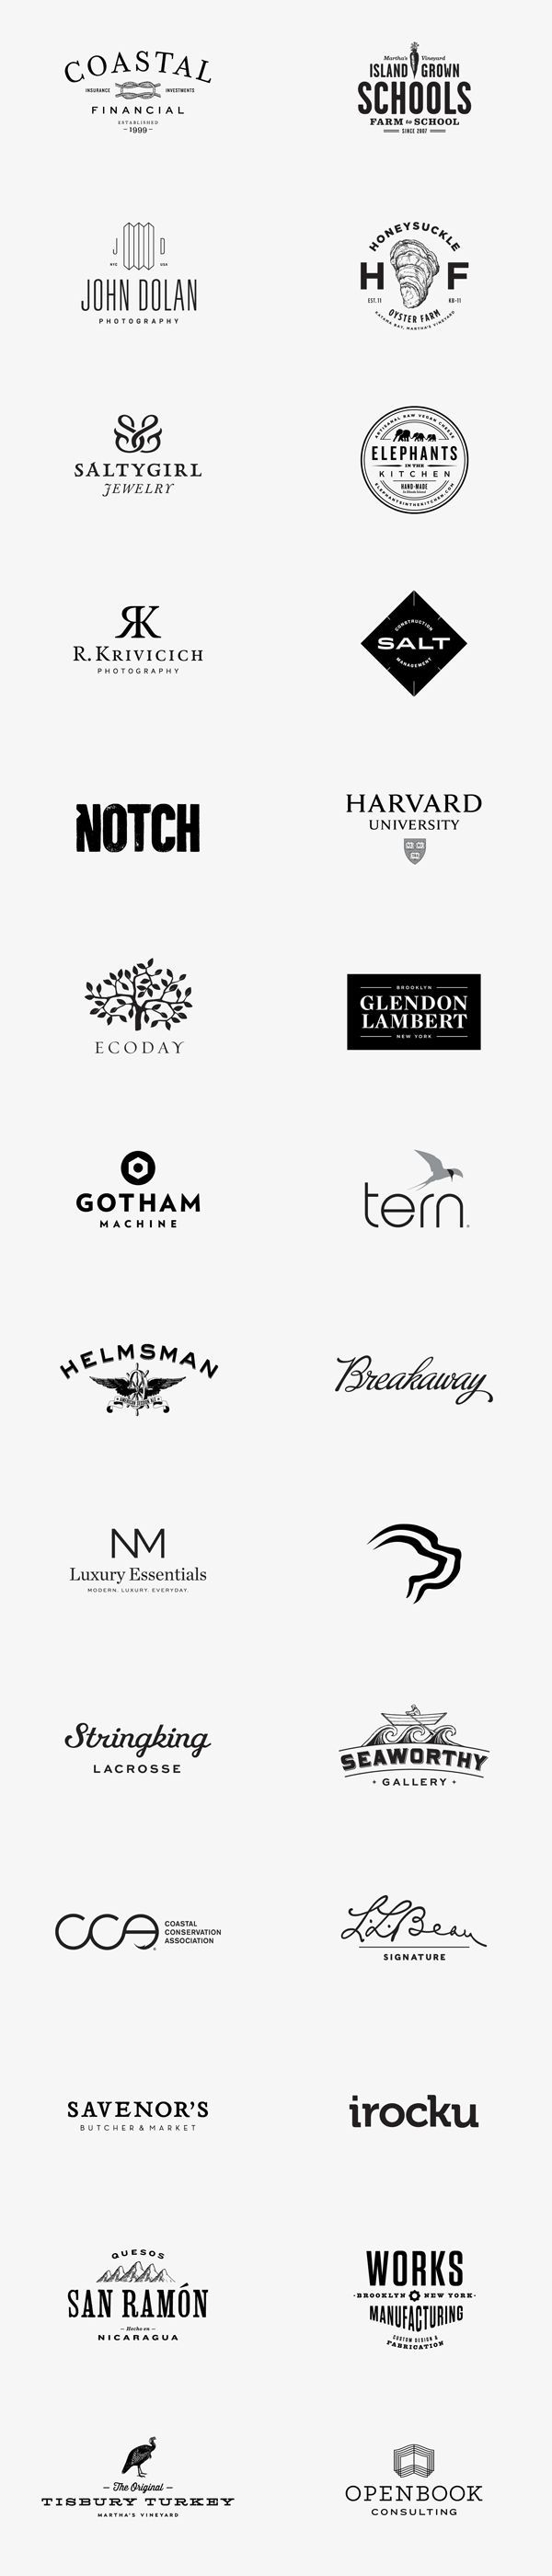 This is an assortment of well designed logos and logotypes created by Bluerock Design for different branding and rebranding projects. Bluerock Design is a studio that offers professional graphic design solutions for print and web with main focus on brand development.: